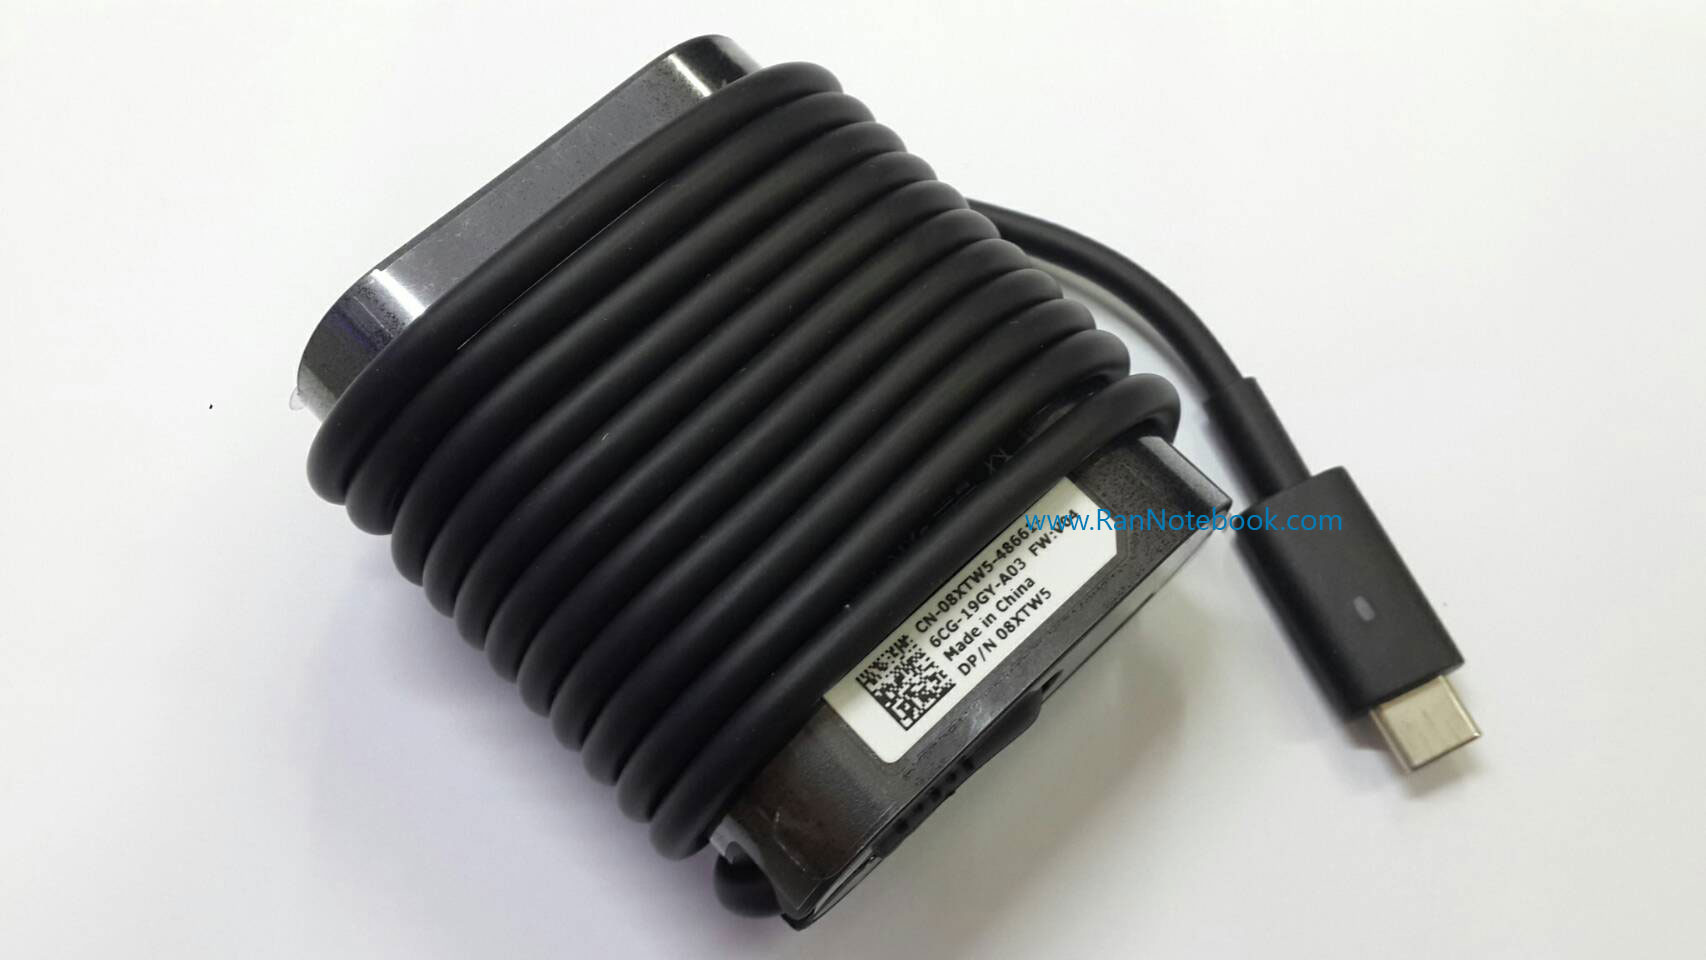 Adapter Dell XPS 13 9365 2in1 30W Type C สายชาร์จแท้ ประกัน ศูนย์ Dell Thailand